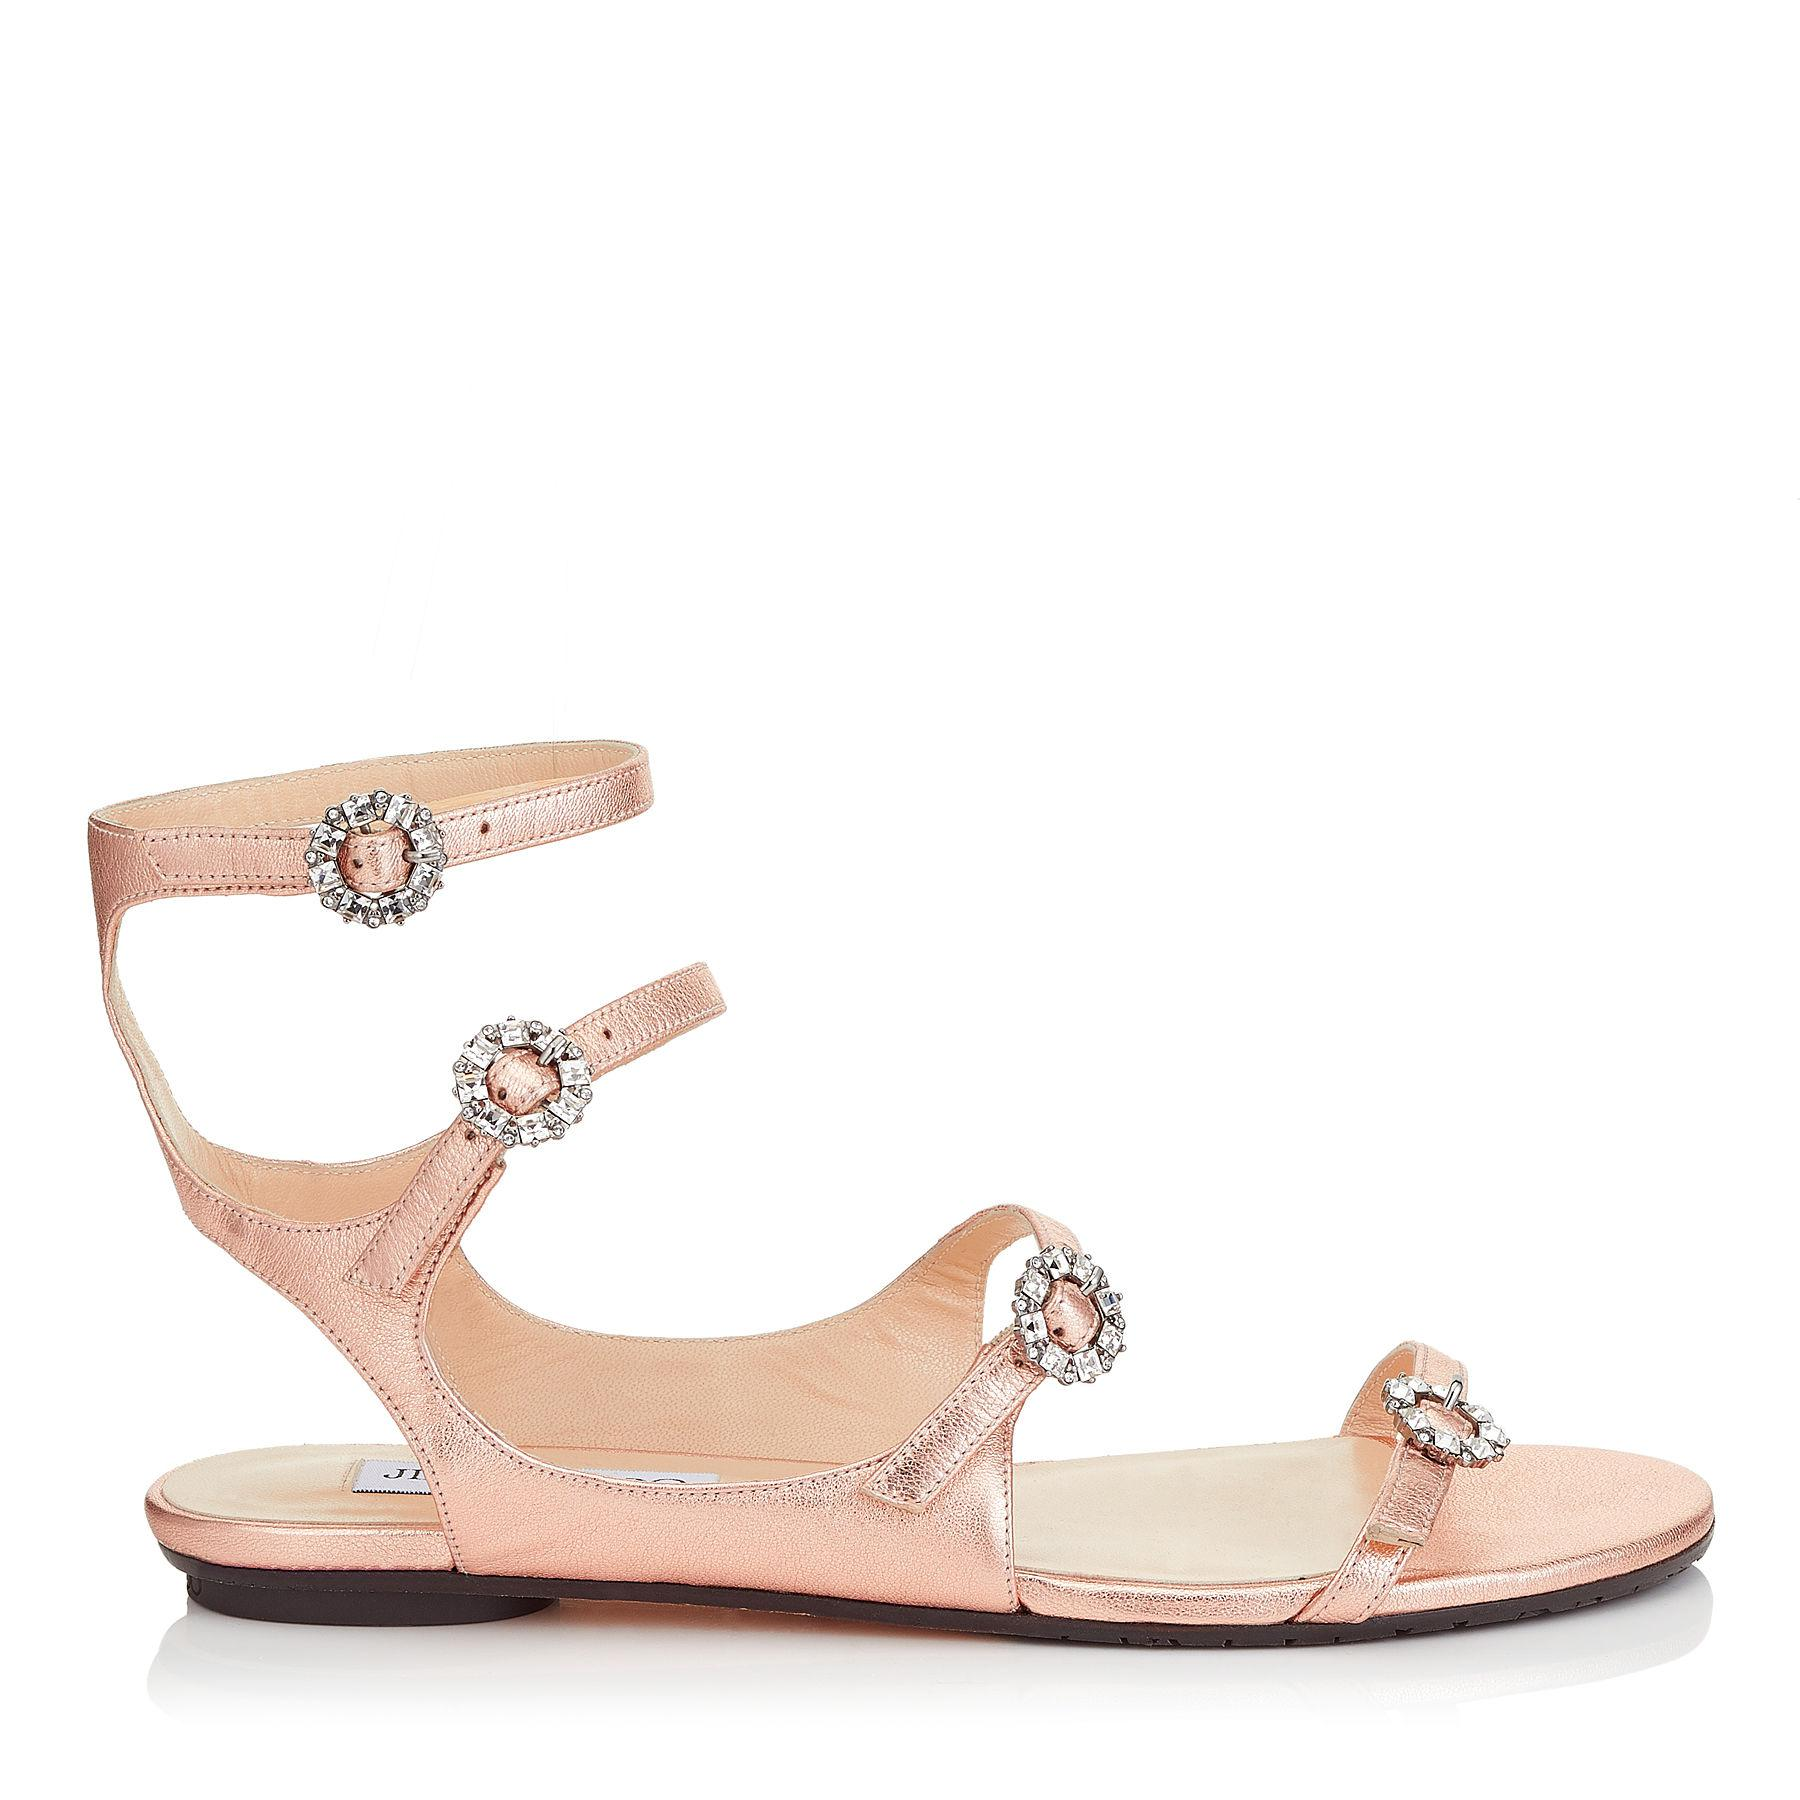 Sandals NAIA FLAT calfskin Crystal ornament Metallic rose Jimmy Choo London KITSaDKx